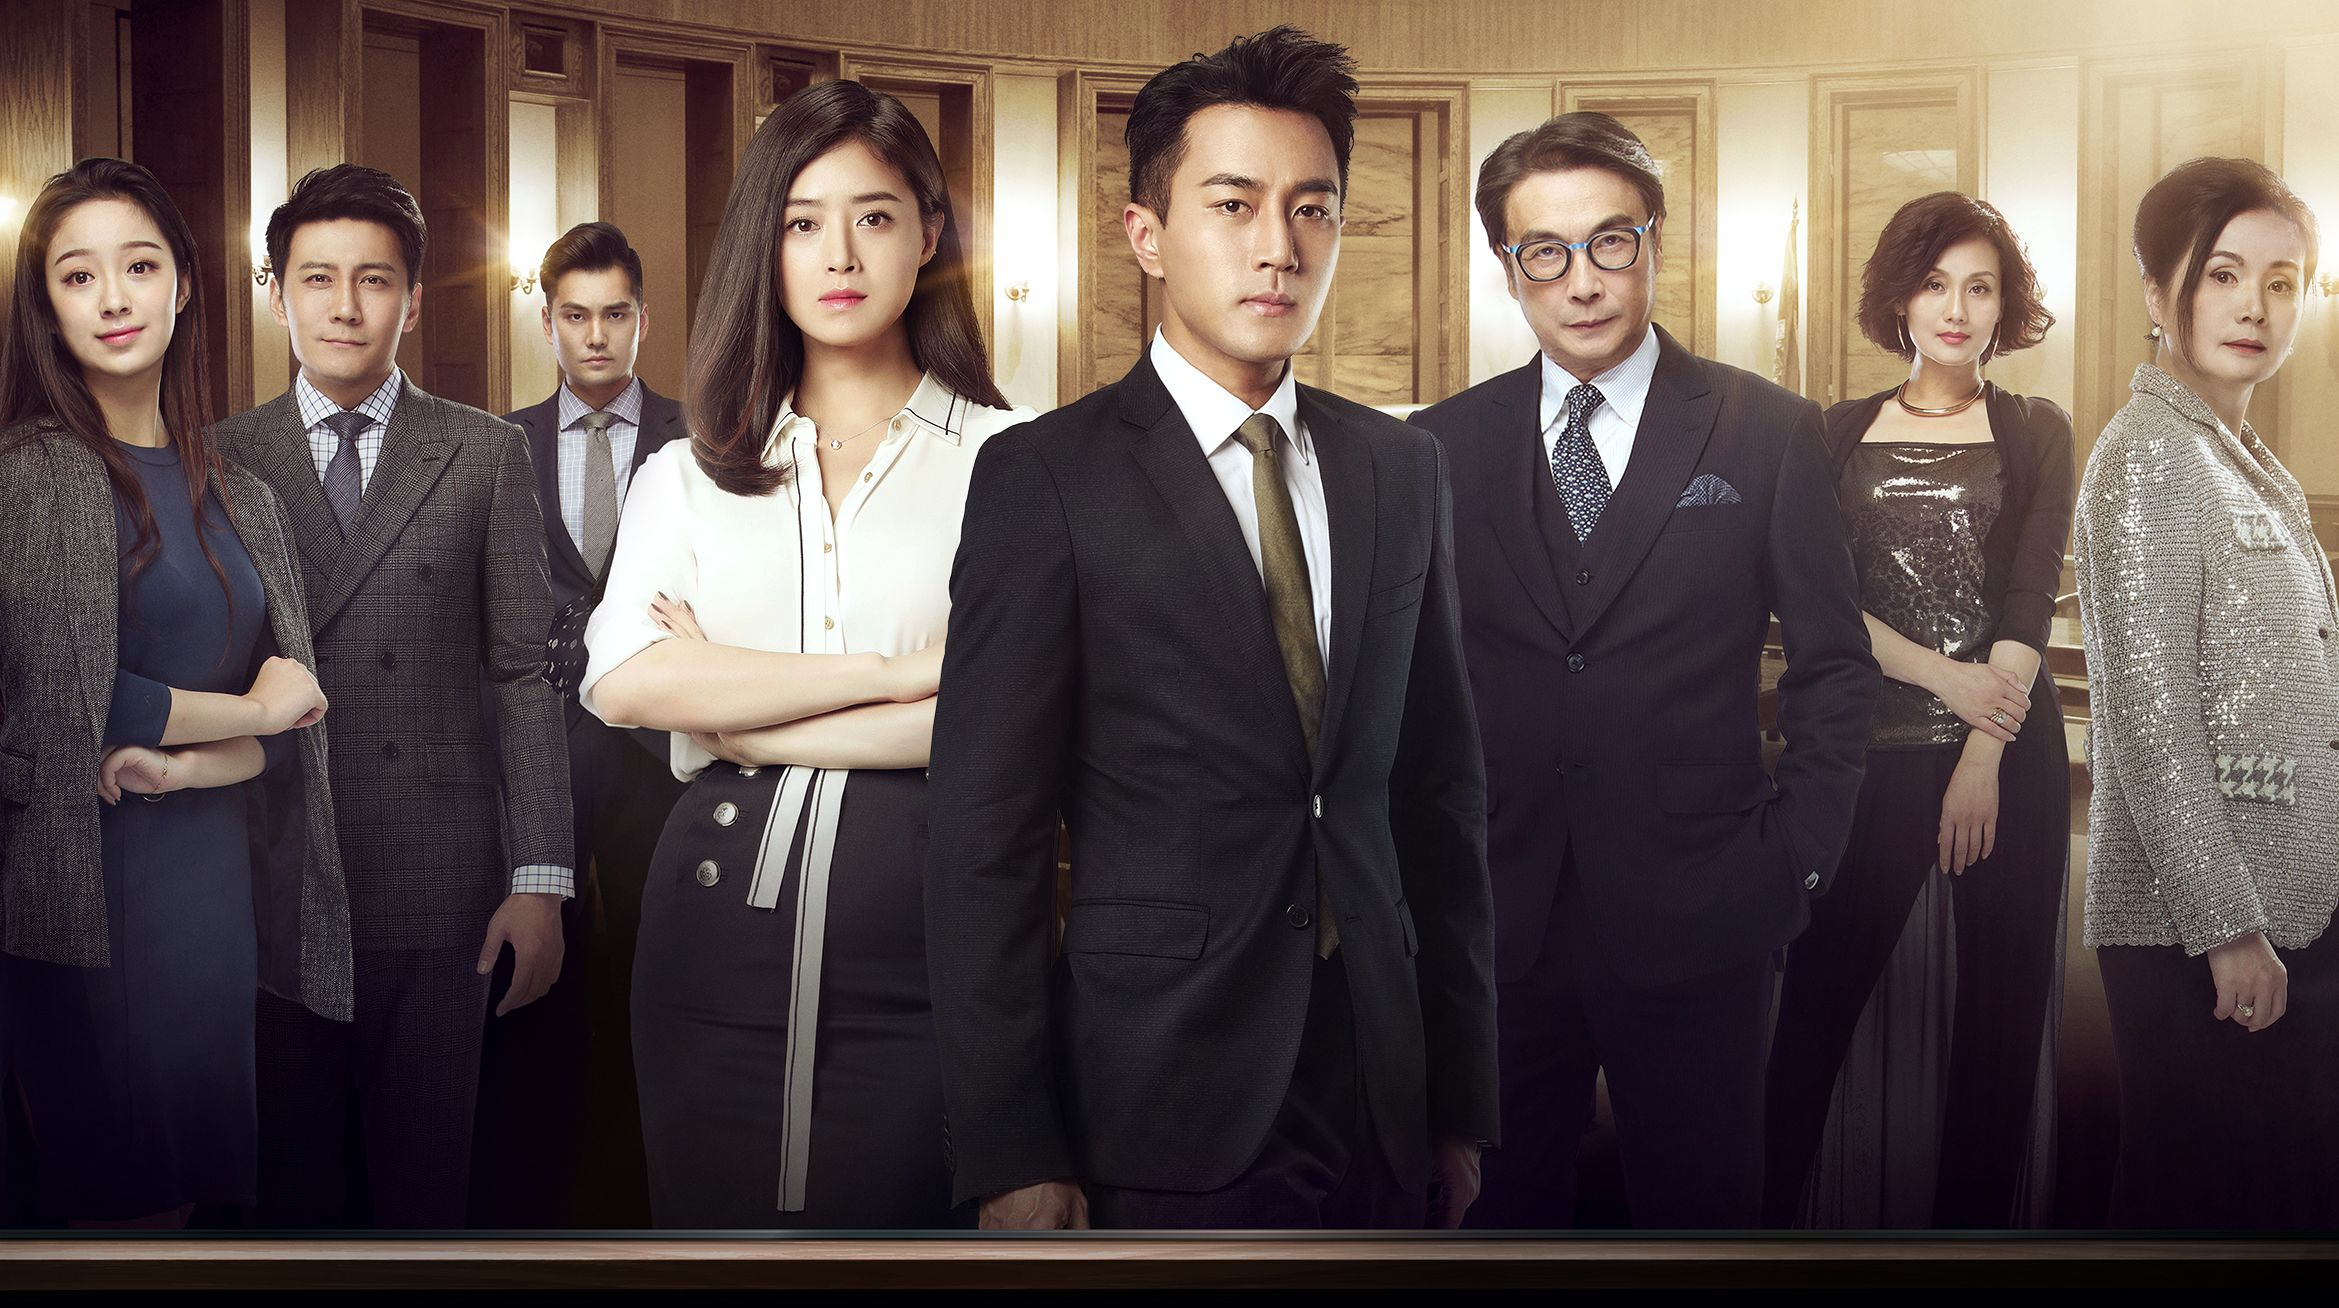 Medalist Lawyer Heir A K A Heirs China 2017 Dragon Tv Starring Hawick Lau Jiang Xin Damian Lau And More 43 The Heirs Chinese Movies Nirvana In Fire